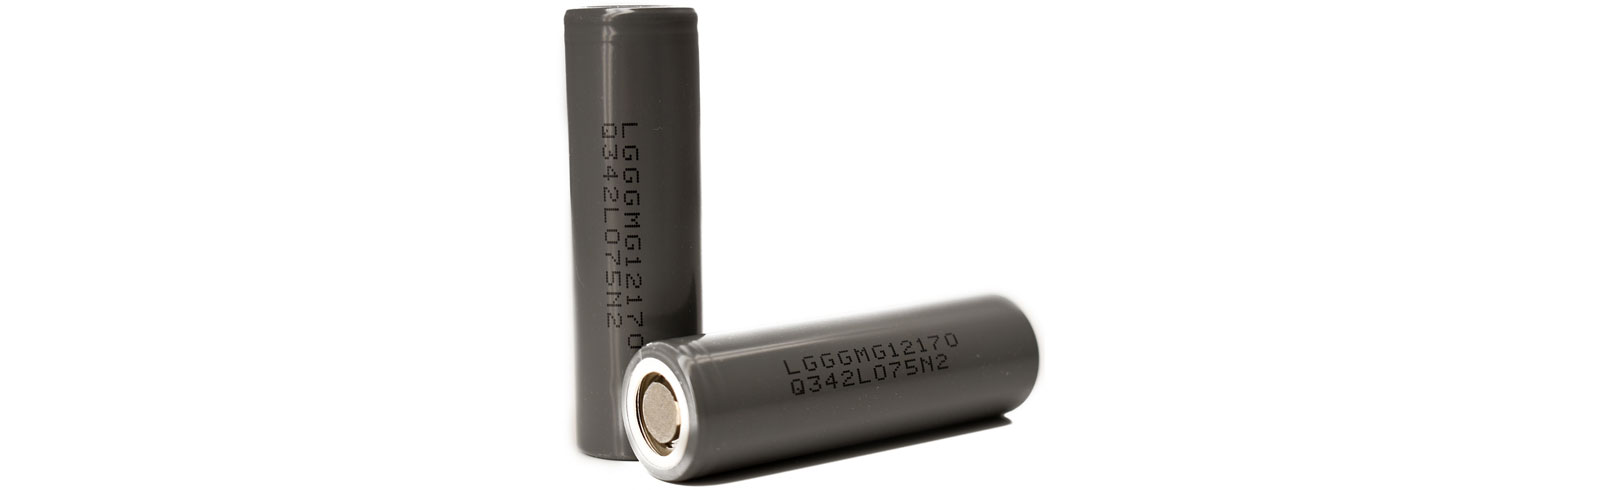 LG Chem will use equipment from Lead China for cylindrical batteries that might be used in Tesla cars